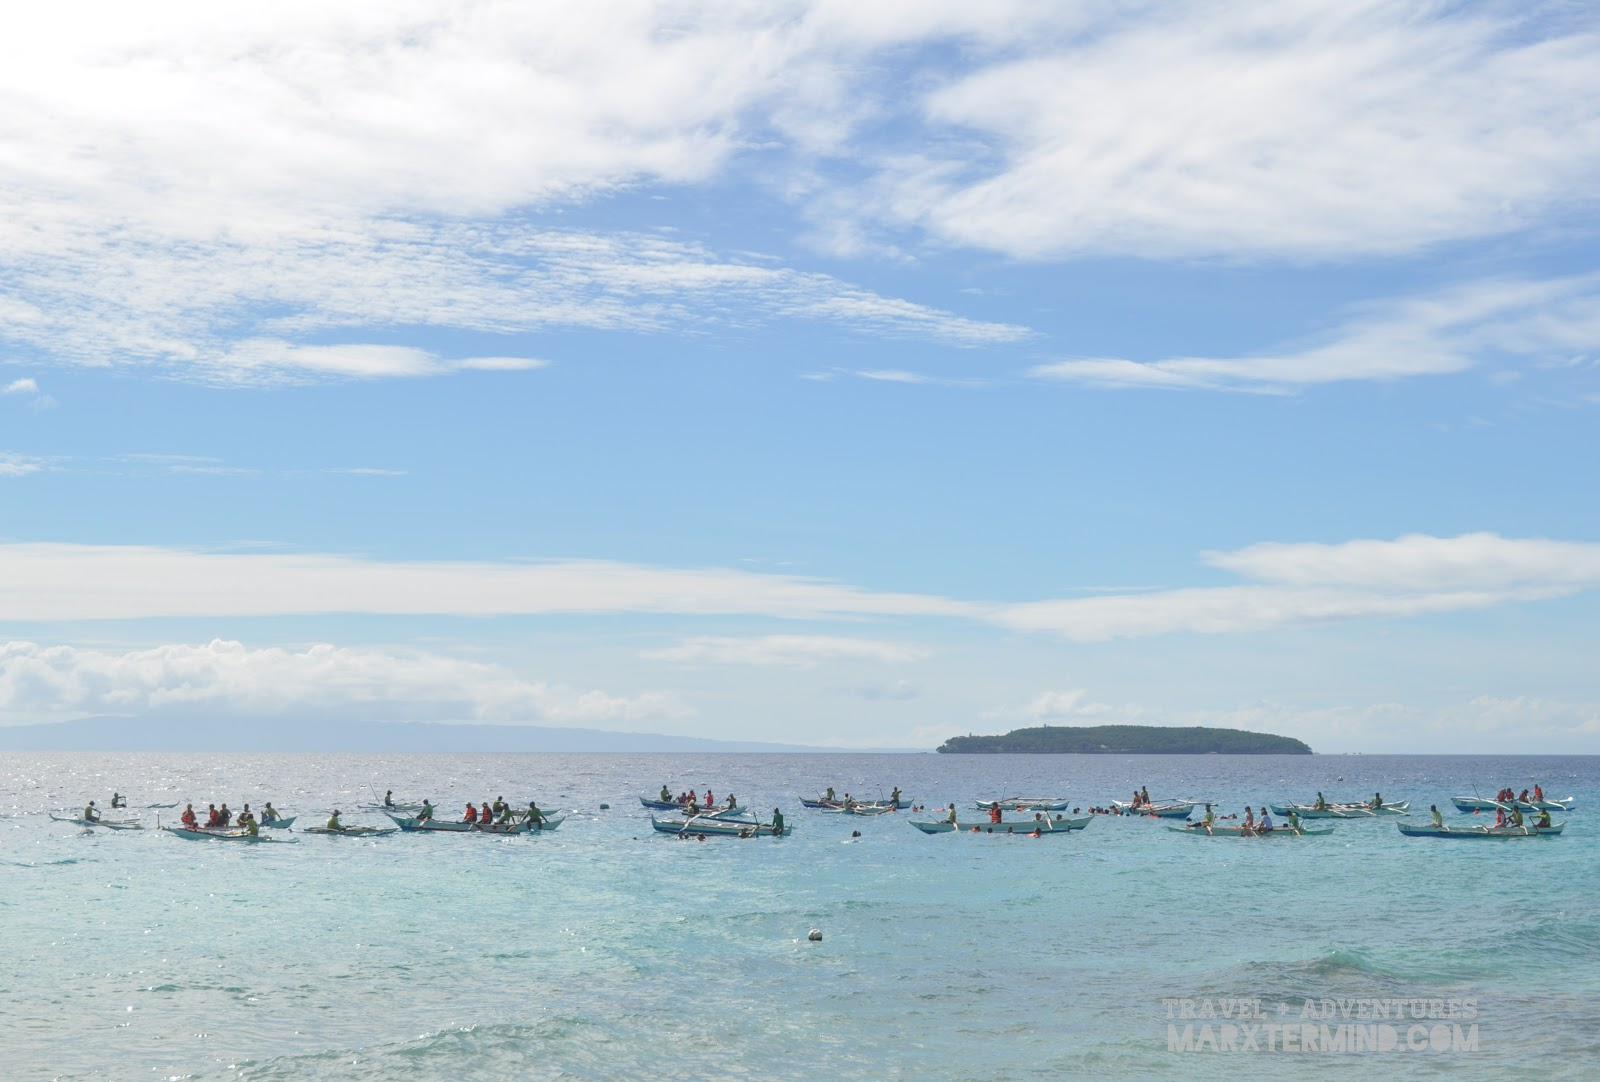 Cebu tourist spots - Sumilon Island and Oslob